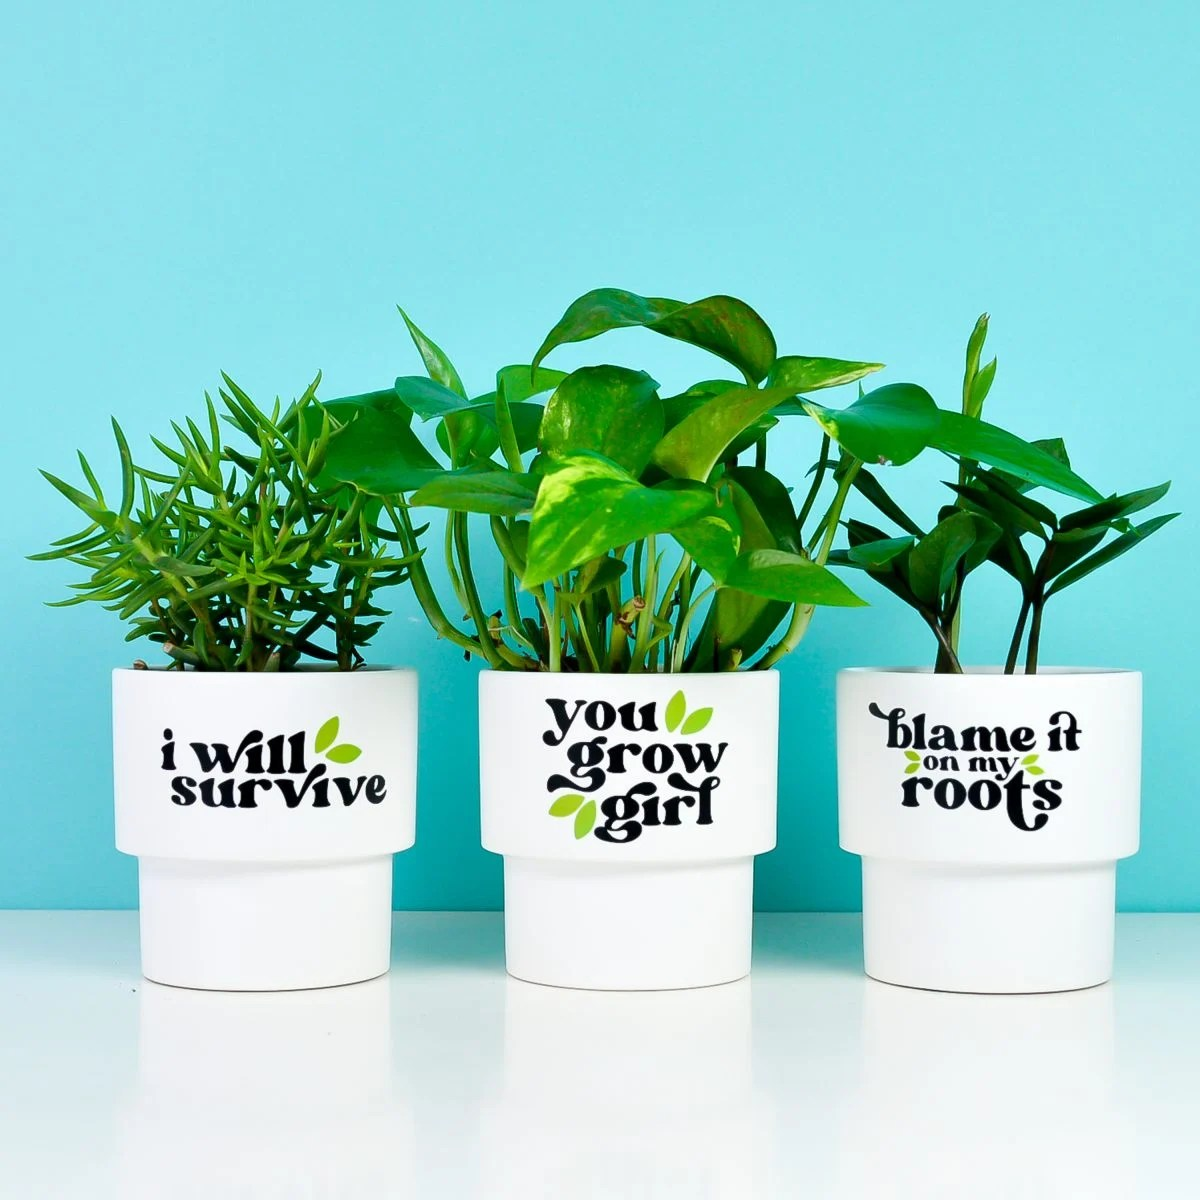 Finished funny flower pots with plants on a teal background